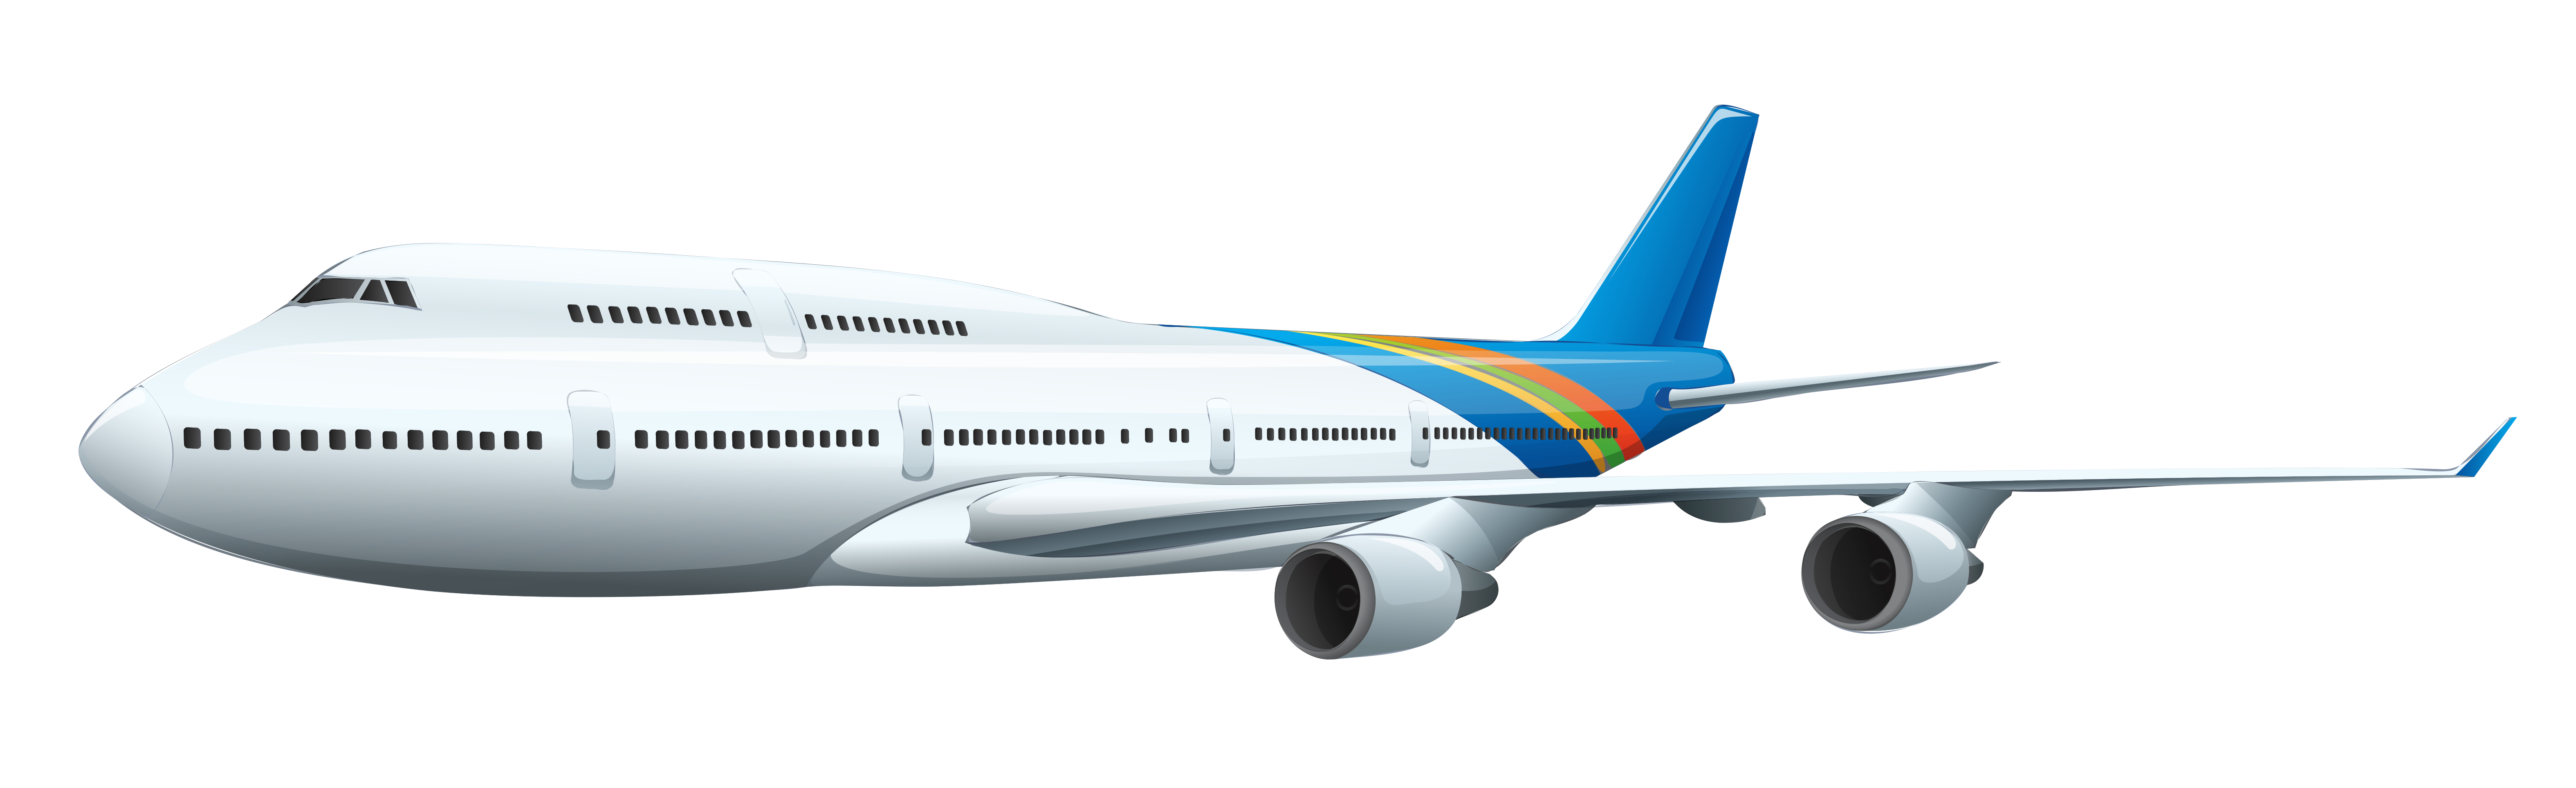 Plane High Quality PNG PNG Images